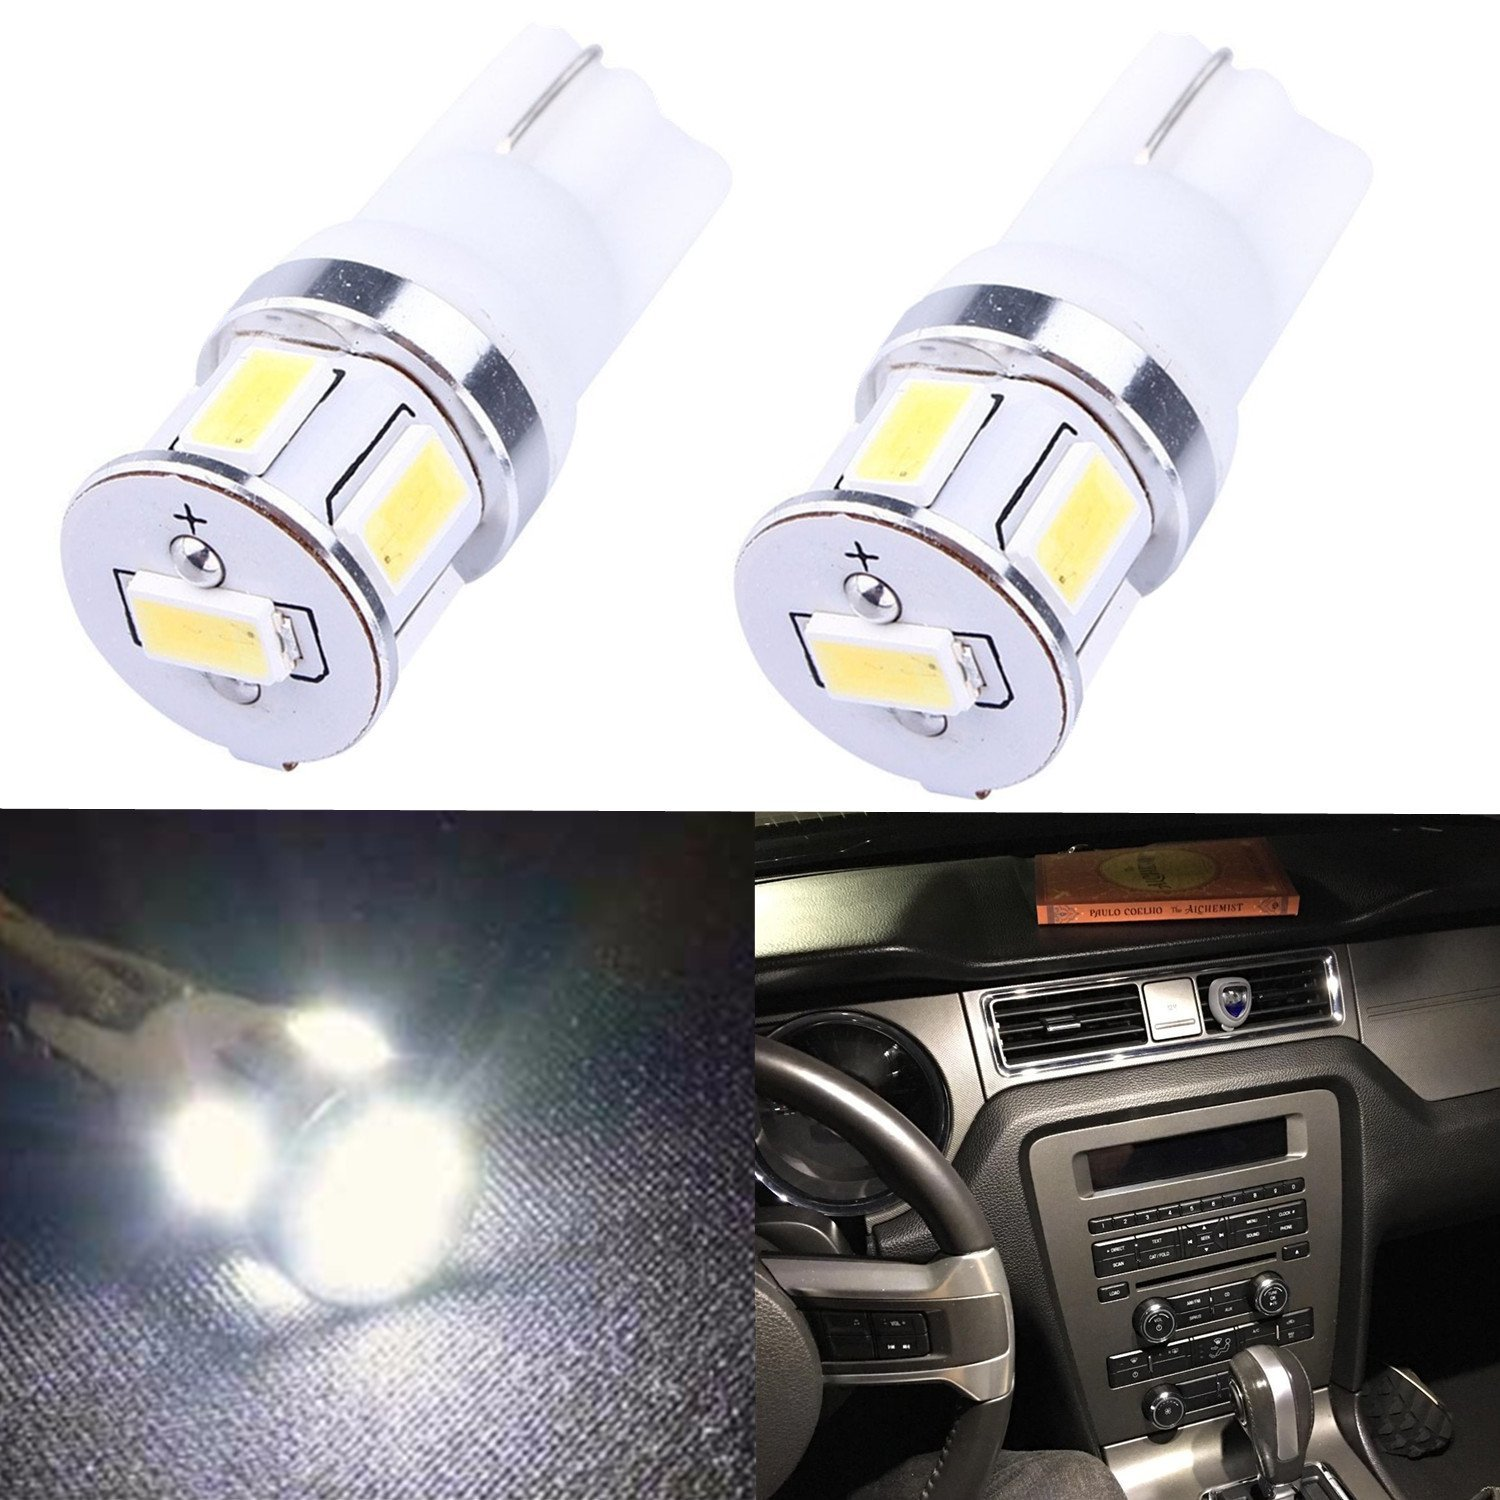 Alla Lighting T10 Wedge 194 168 2825 W5W Super Bright White High Power 5730 SMD LED Lights Bulbs